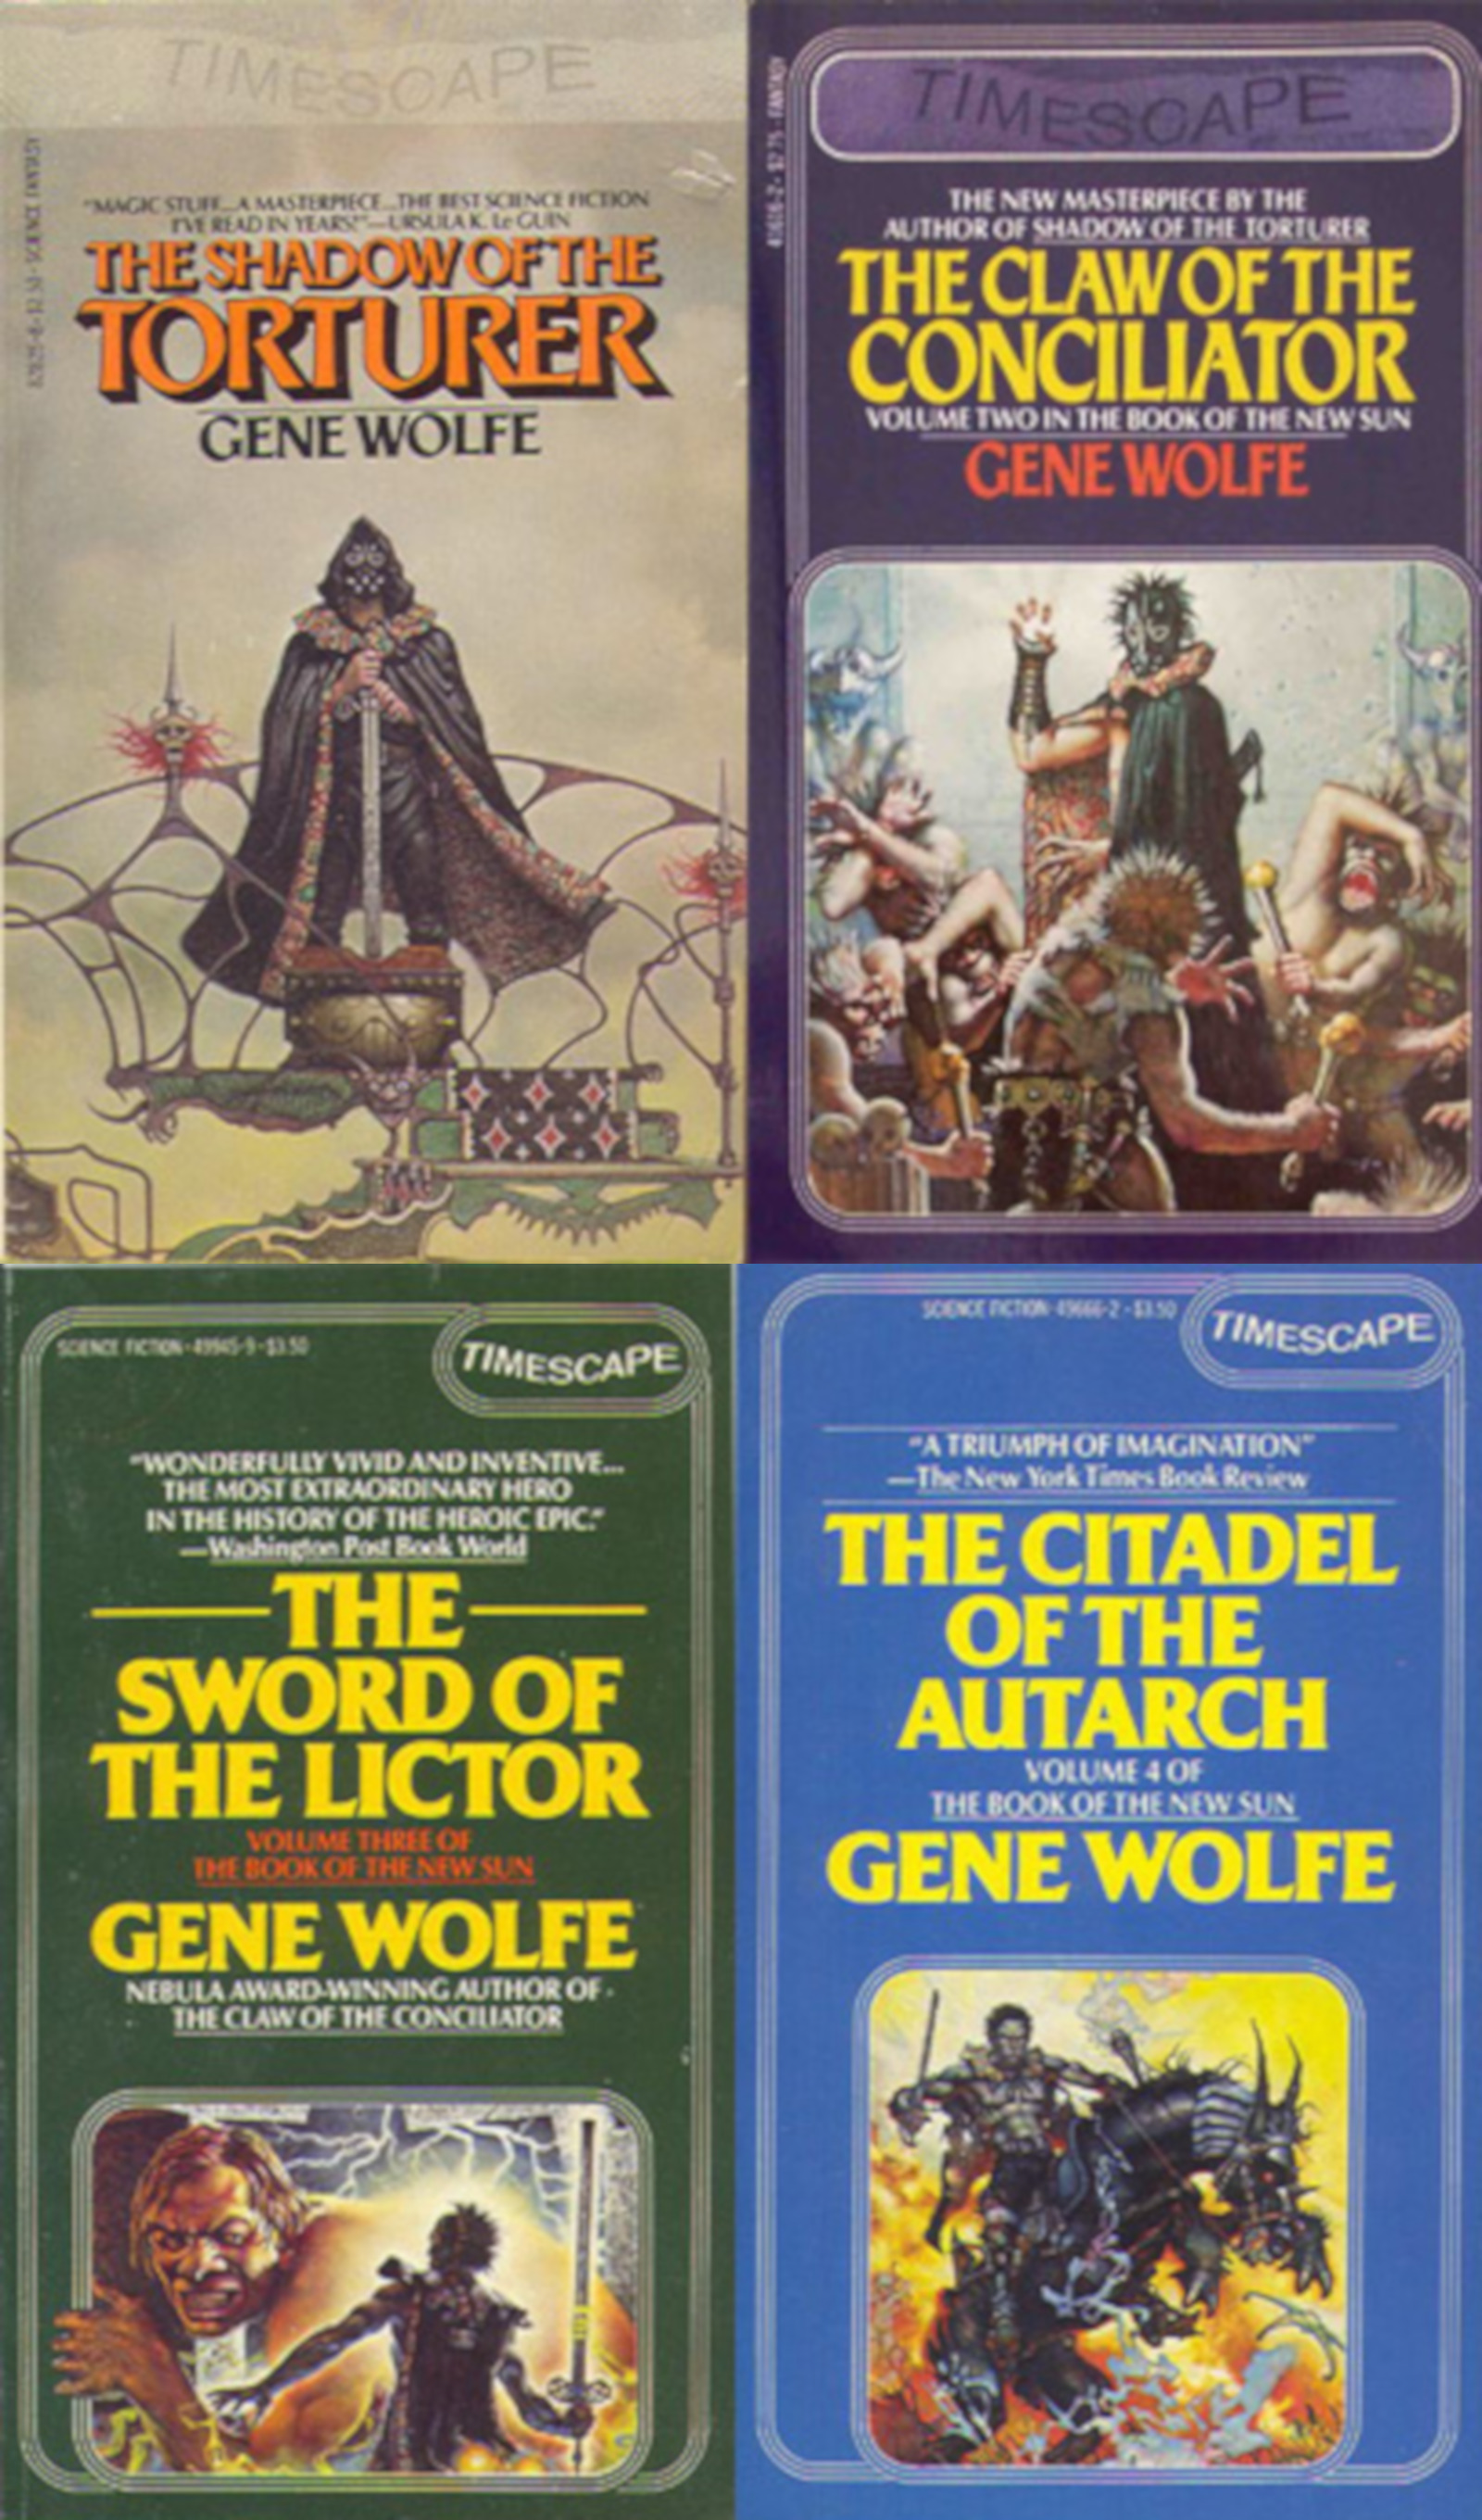 """The Book of the New Sun (1980-1983) - Wolfe's Magnum Opus, ranked by Locus Magazine as the 3rd best fantasy novel of all time behind only the works of J.R.R. Tolkien, follows the journey of the torturer's apprentice Severian who is expelled by his guild for the unforgivable crime of showing mercy to a """"client"""". Equipped with an executioner's sword and an ancient relic that raises the dead, Severian encounters time travelers, a mad scientist, revolutionaries, & nobility."""